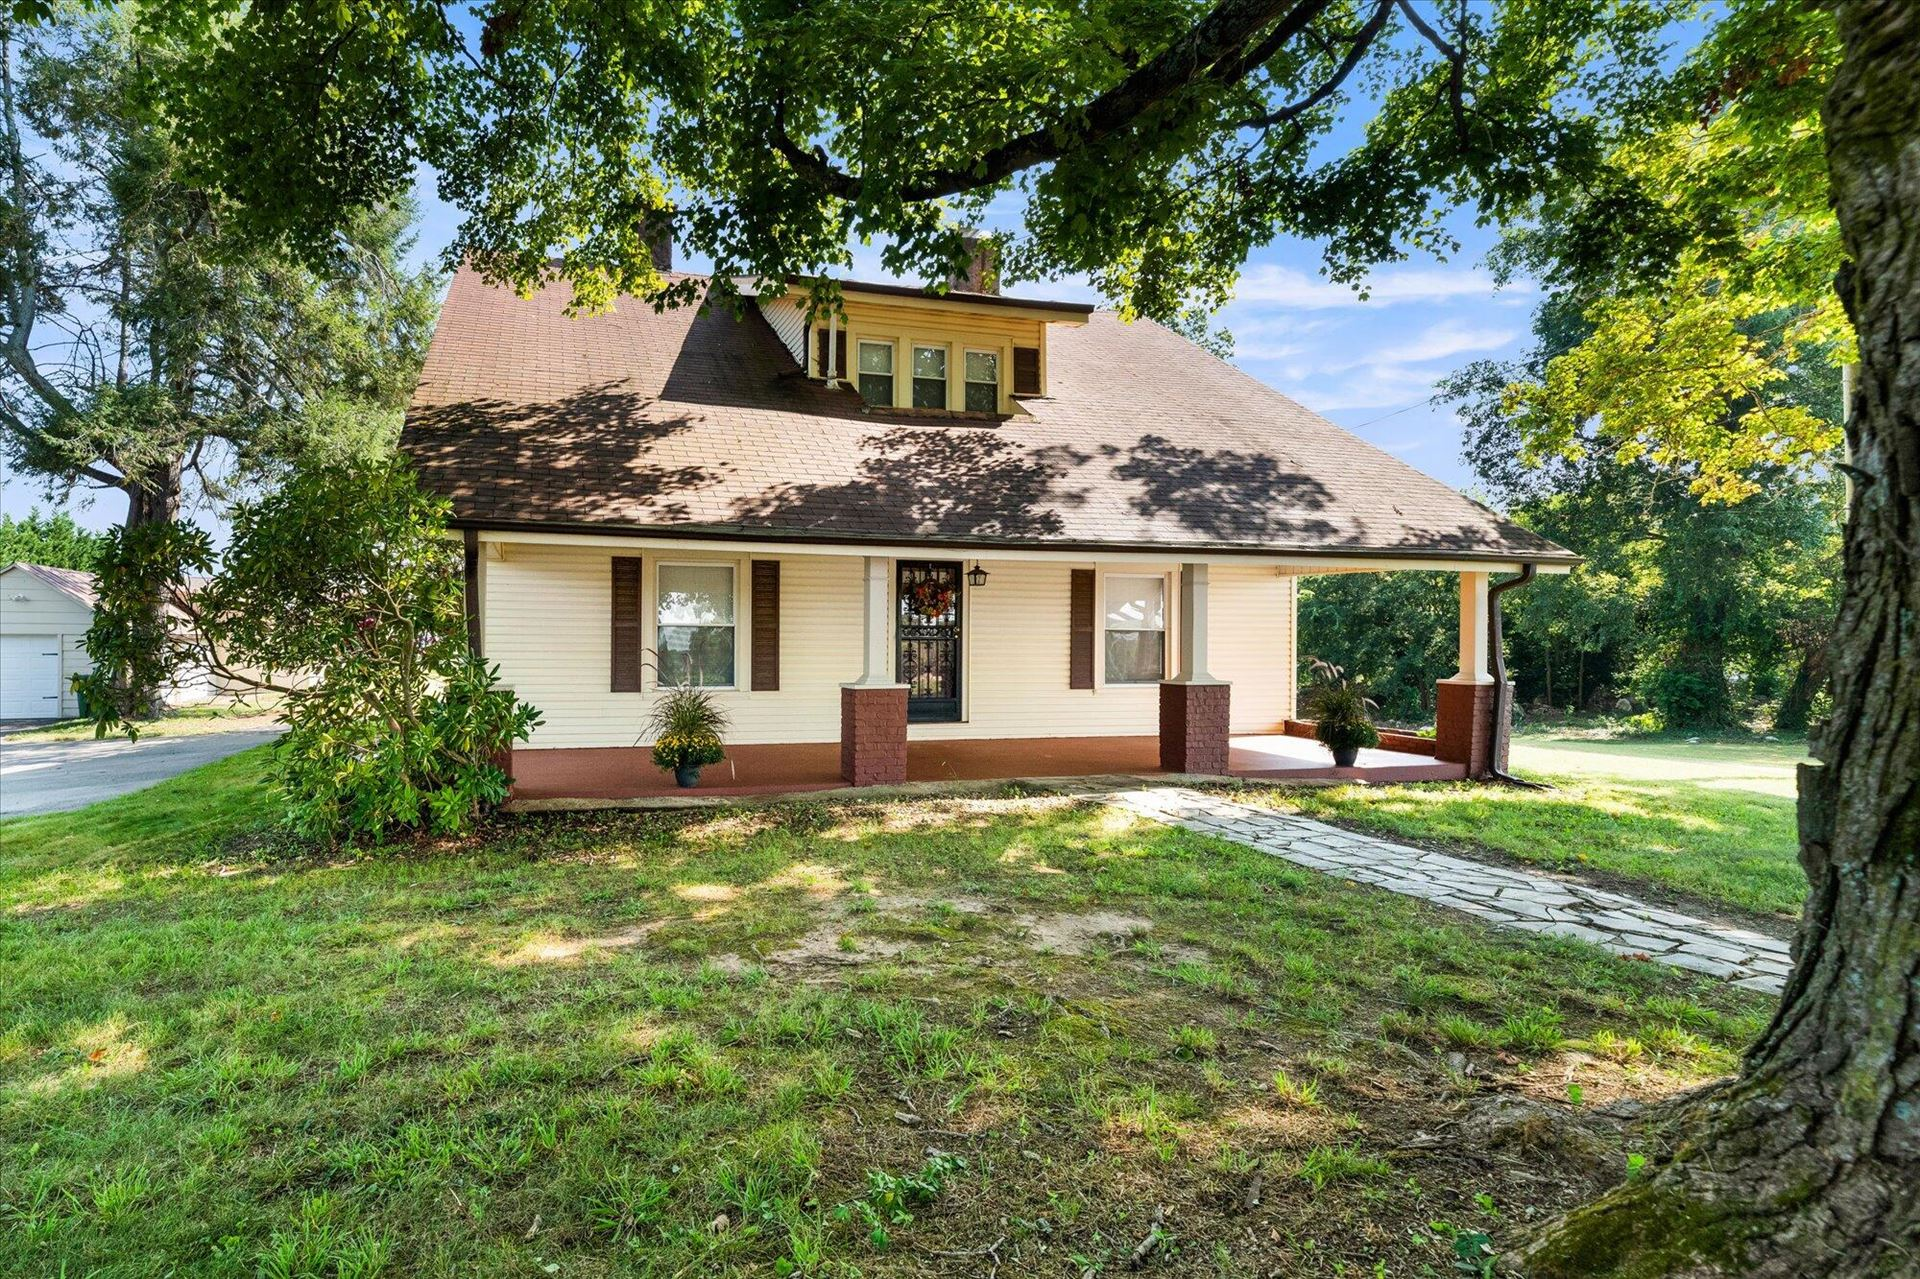 Photo of 4900 Murphy Rd, Knoxville, TN 37918 (MLS # 1168486)